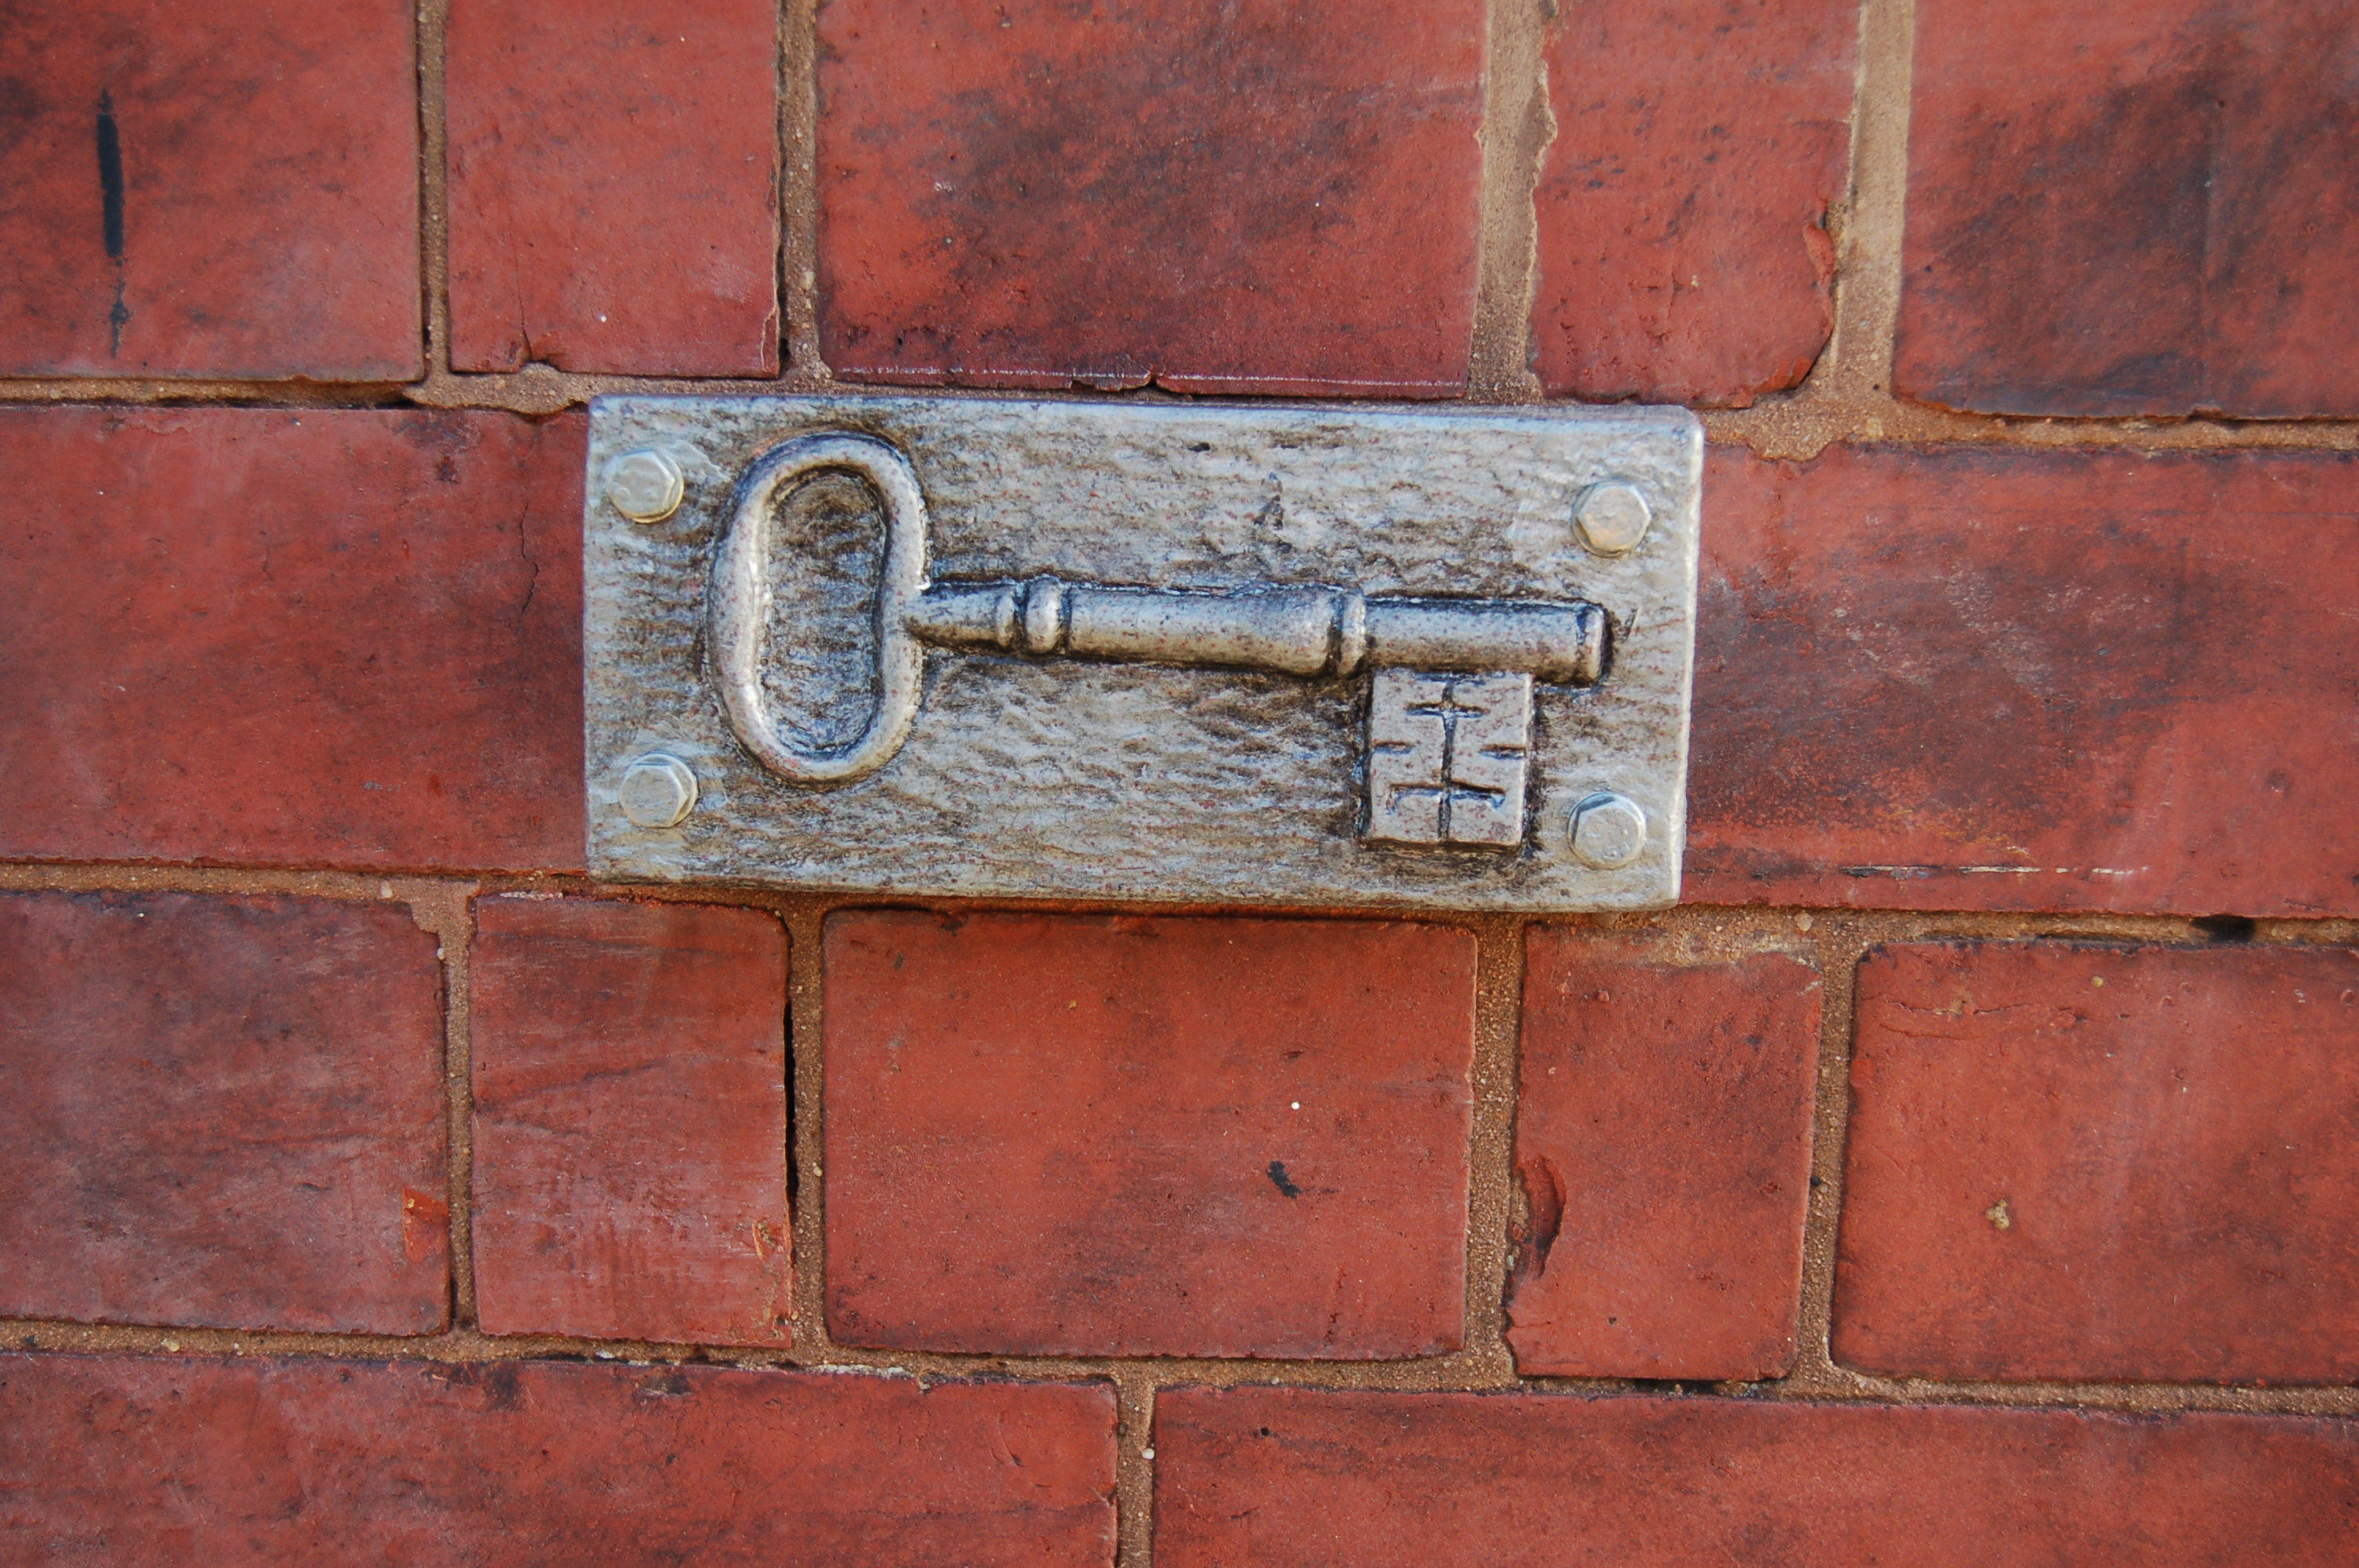 Looking Through The Key Hole (7)